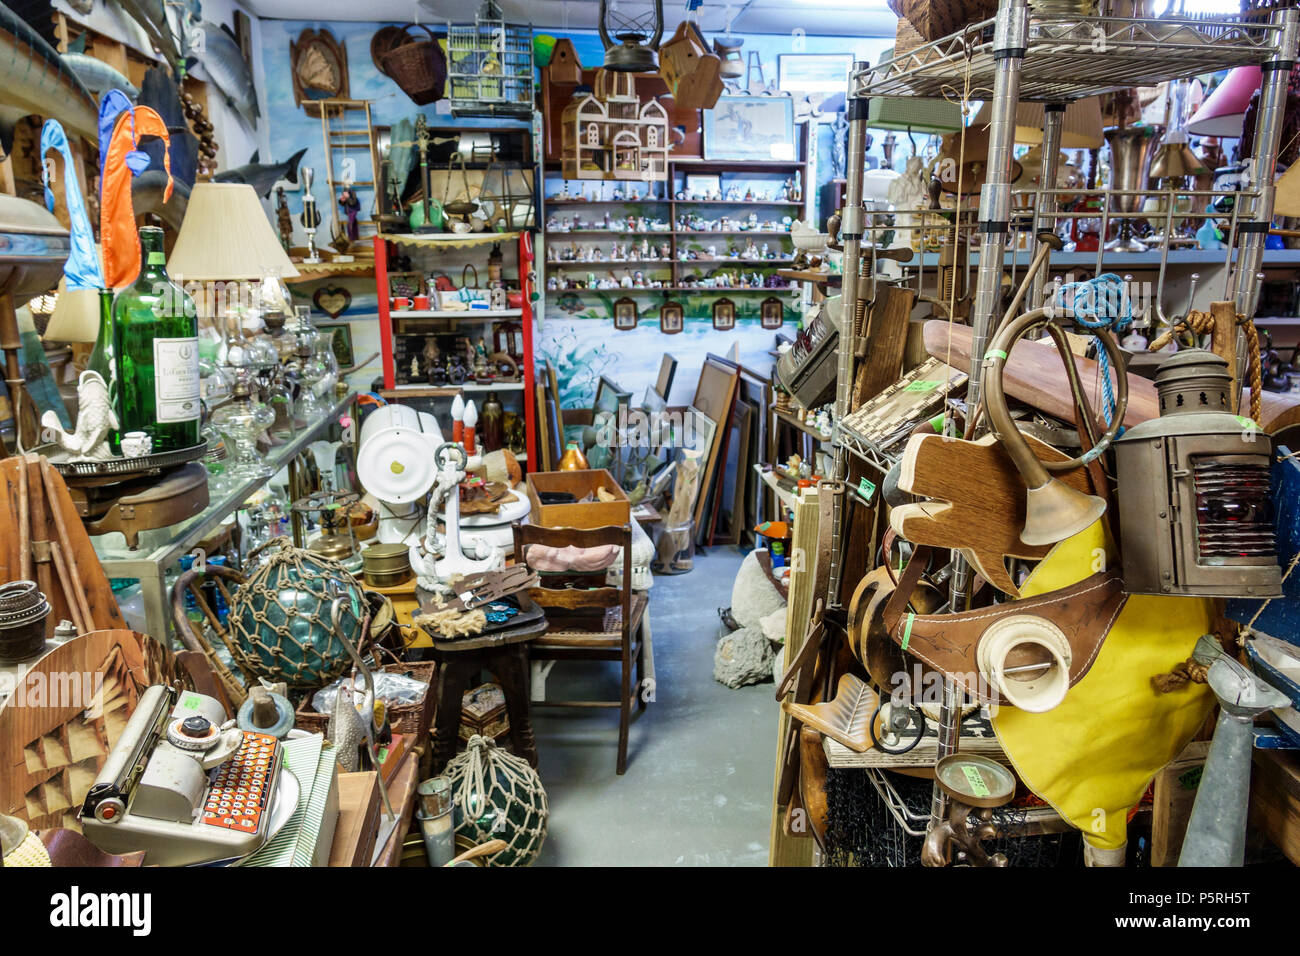 Stuart Florida Crow's Nest Antiques Nautical shopping marine souvenirs cluttered messy shelves display sale - Stock Image